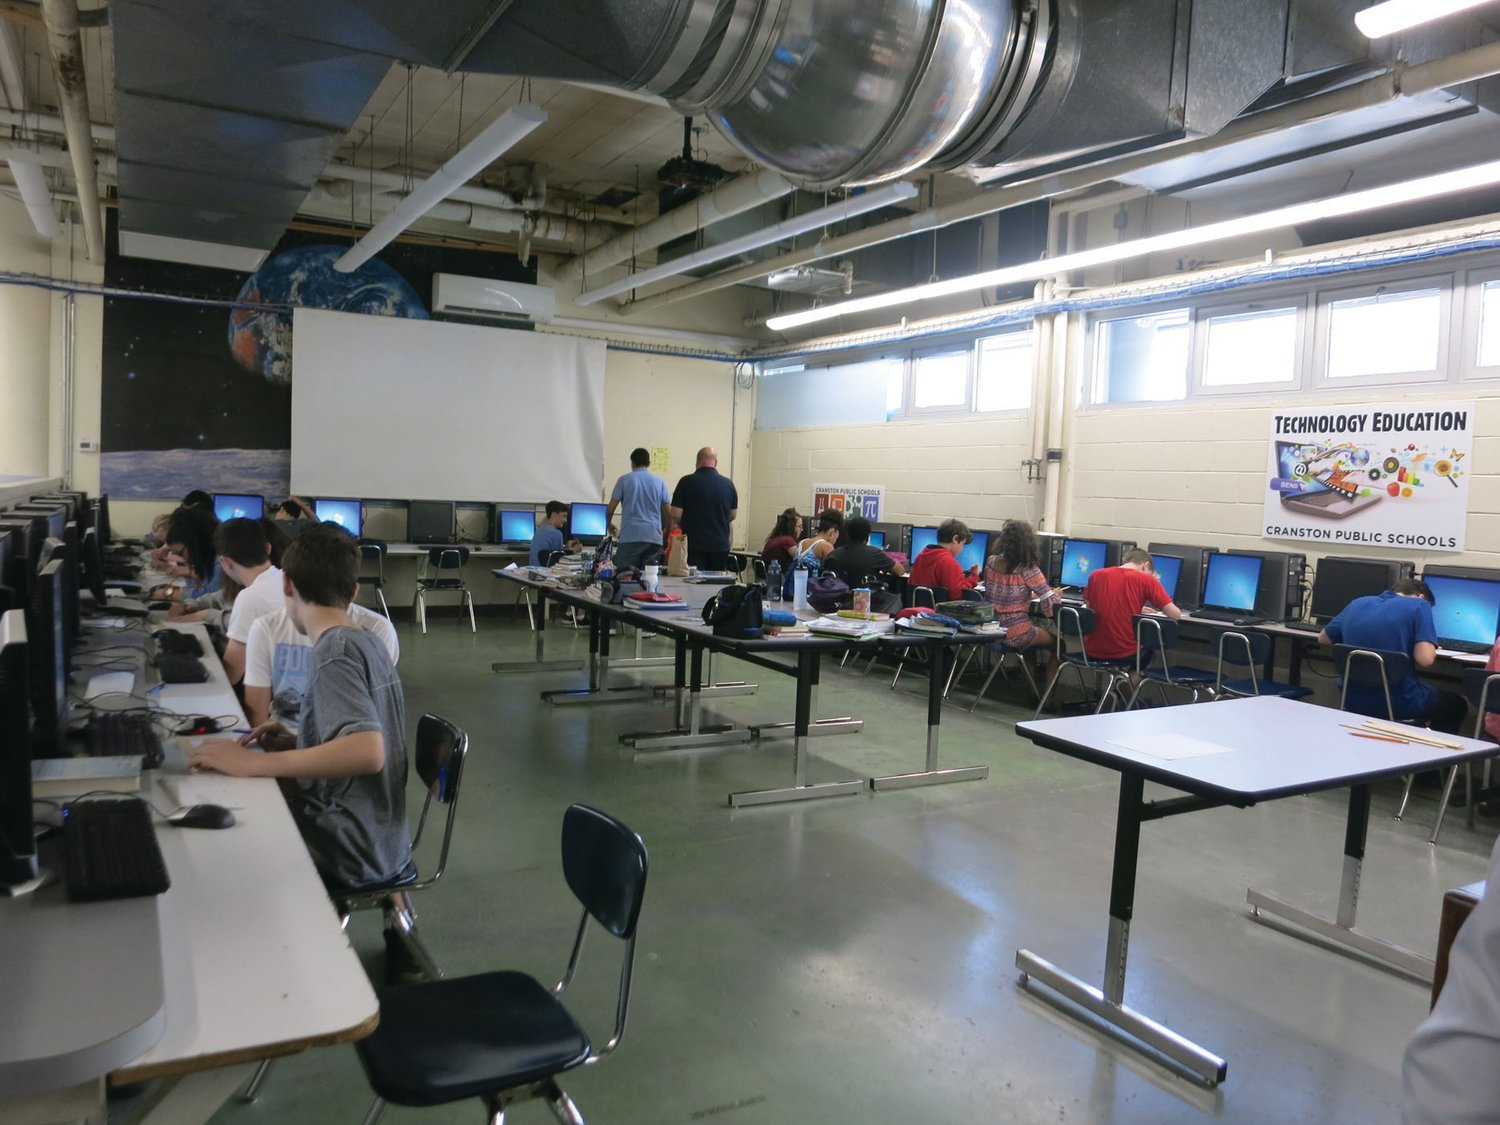 OUR CURRENT COMPUTER LAB:  A basement room currently houses the computer lab at Park View. The modernization of this space is in the proposed plans for Park View.